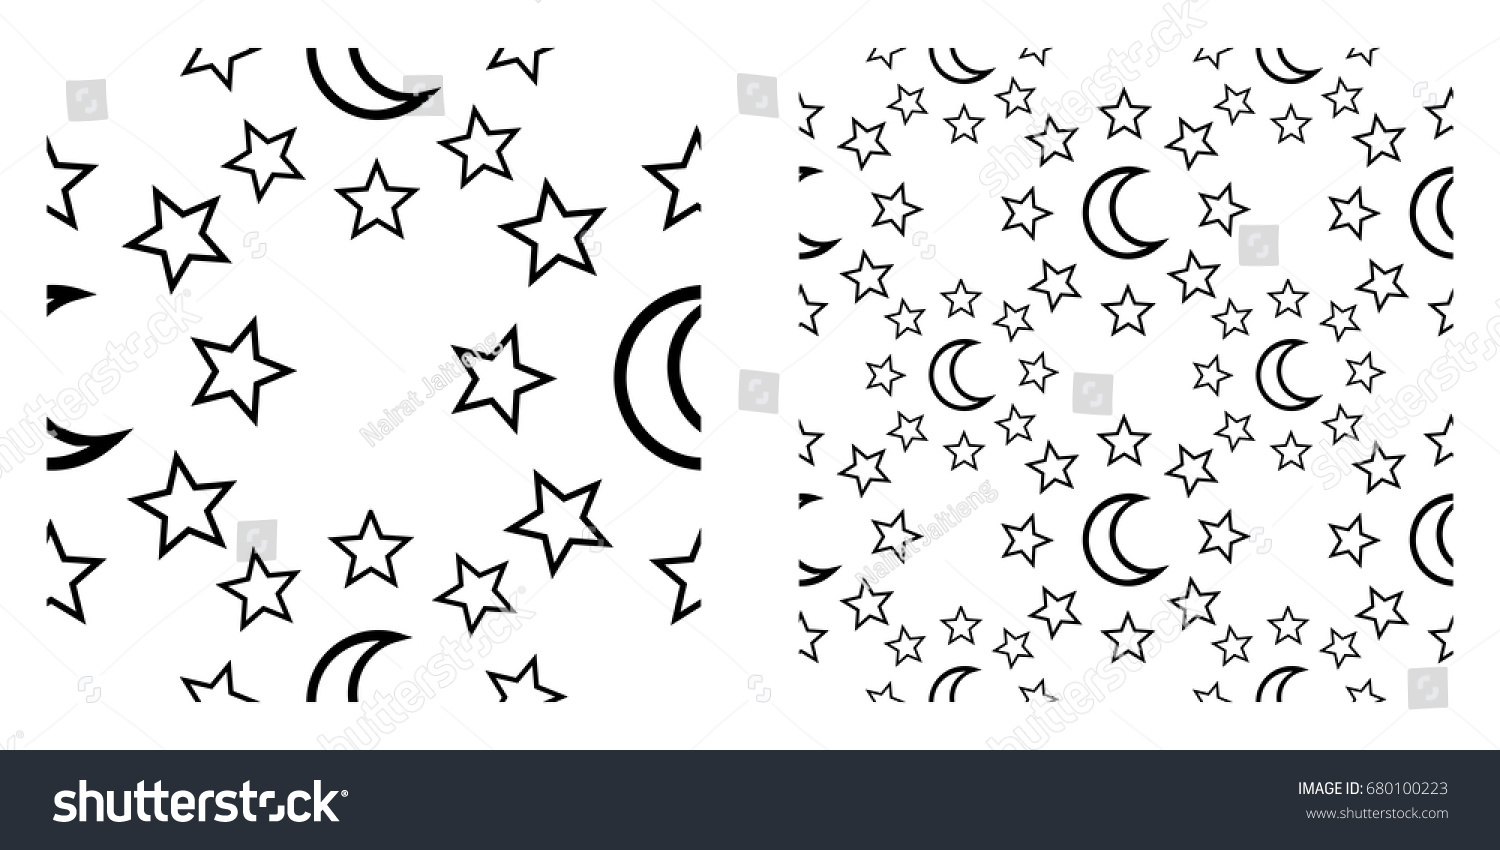 Symmetry Seamless Pattern Crescent Moon Star Stock Vector Royalty